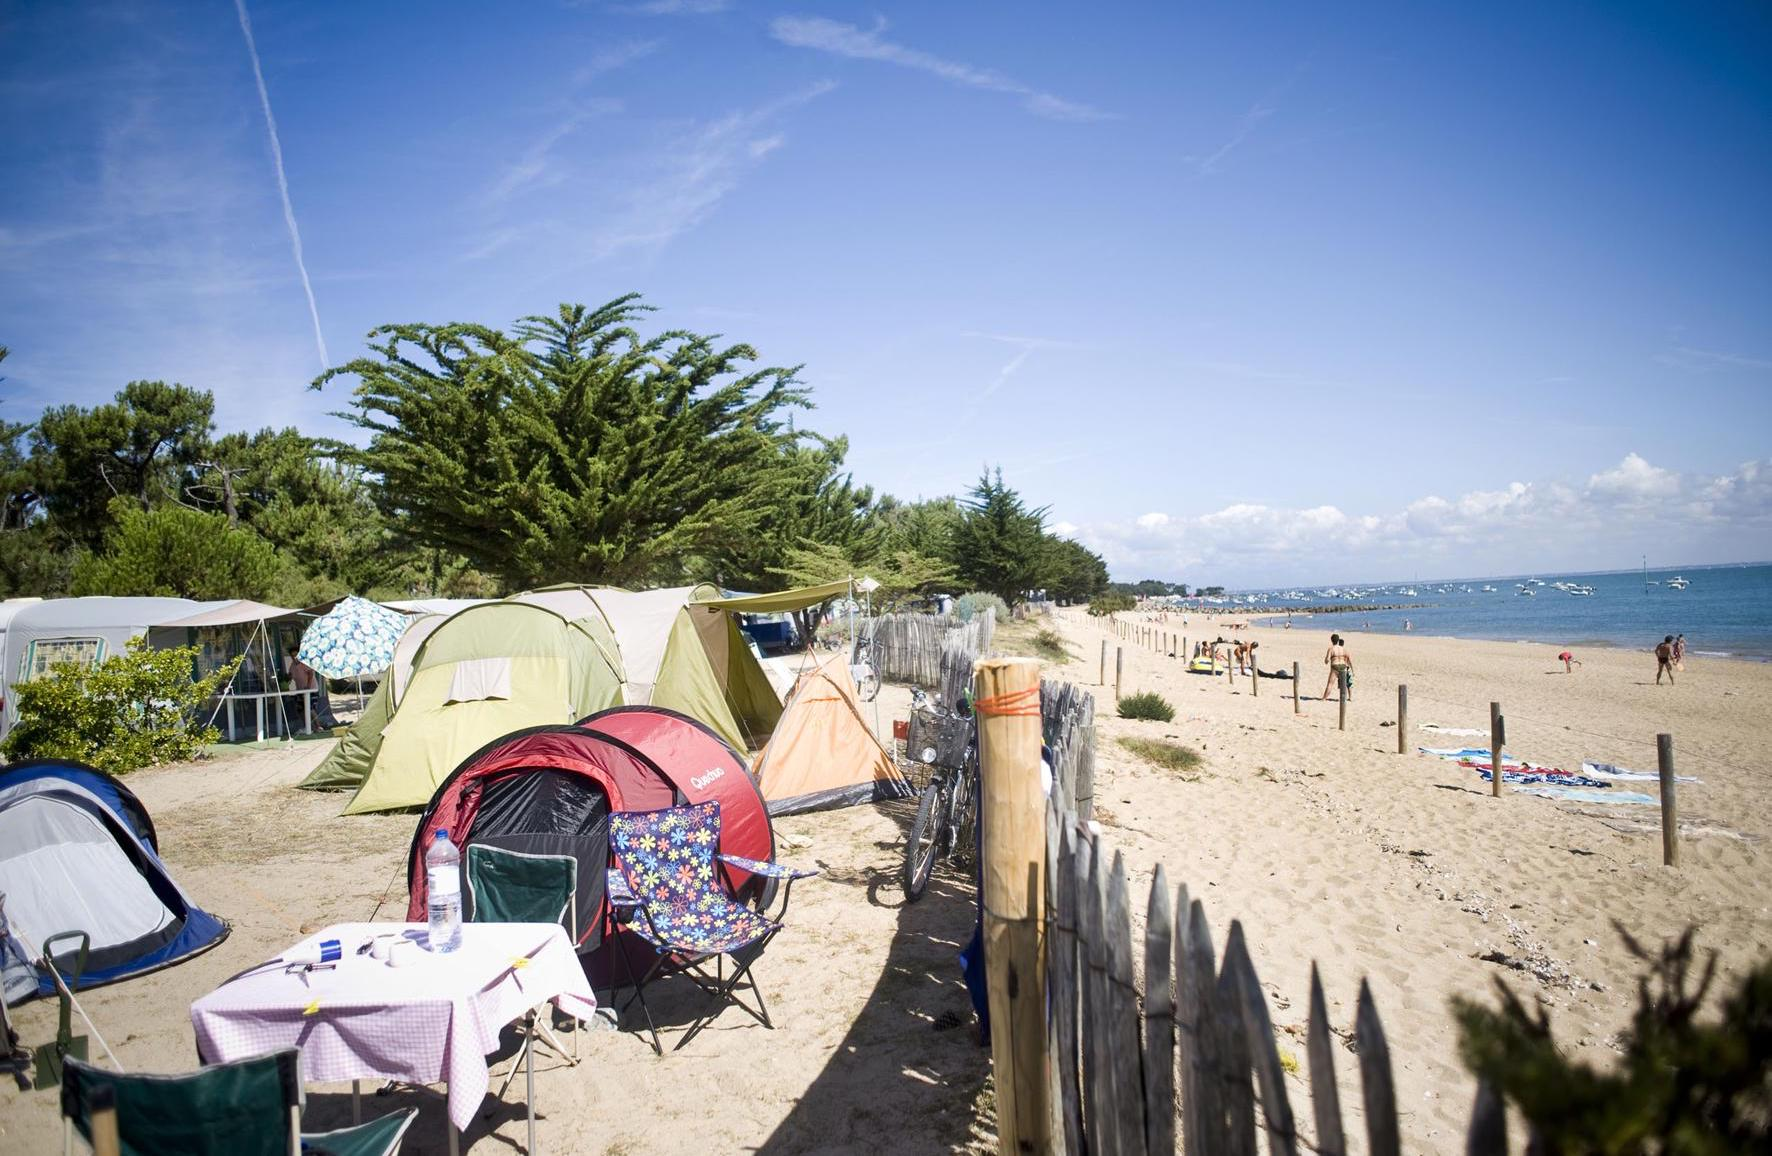 Seaside camping in France - best campsites by the beach - France